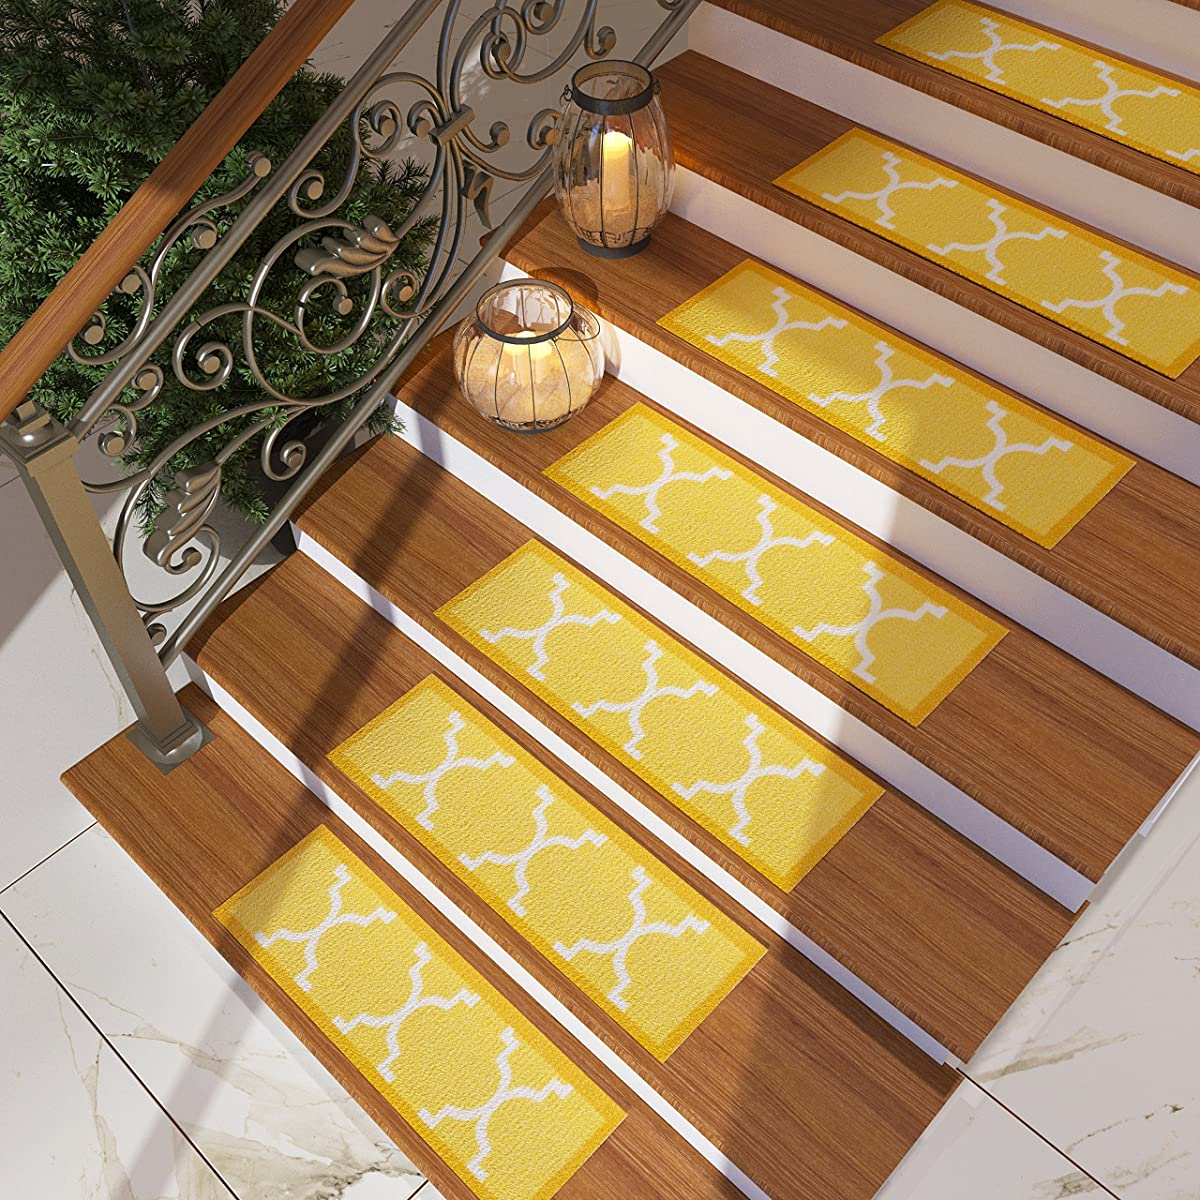 [Set Of 7] Gold Yellow Stair Tread Rugs | Modern Design Trellis Lattice Carpet  Pads [Easy ...